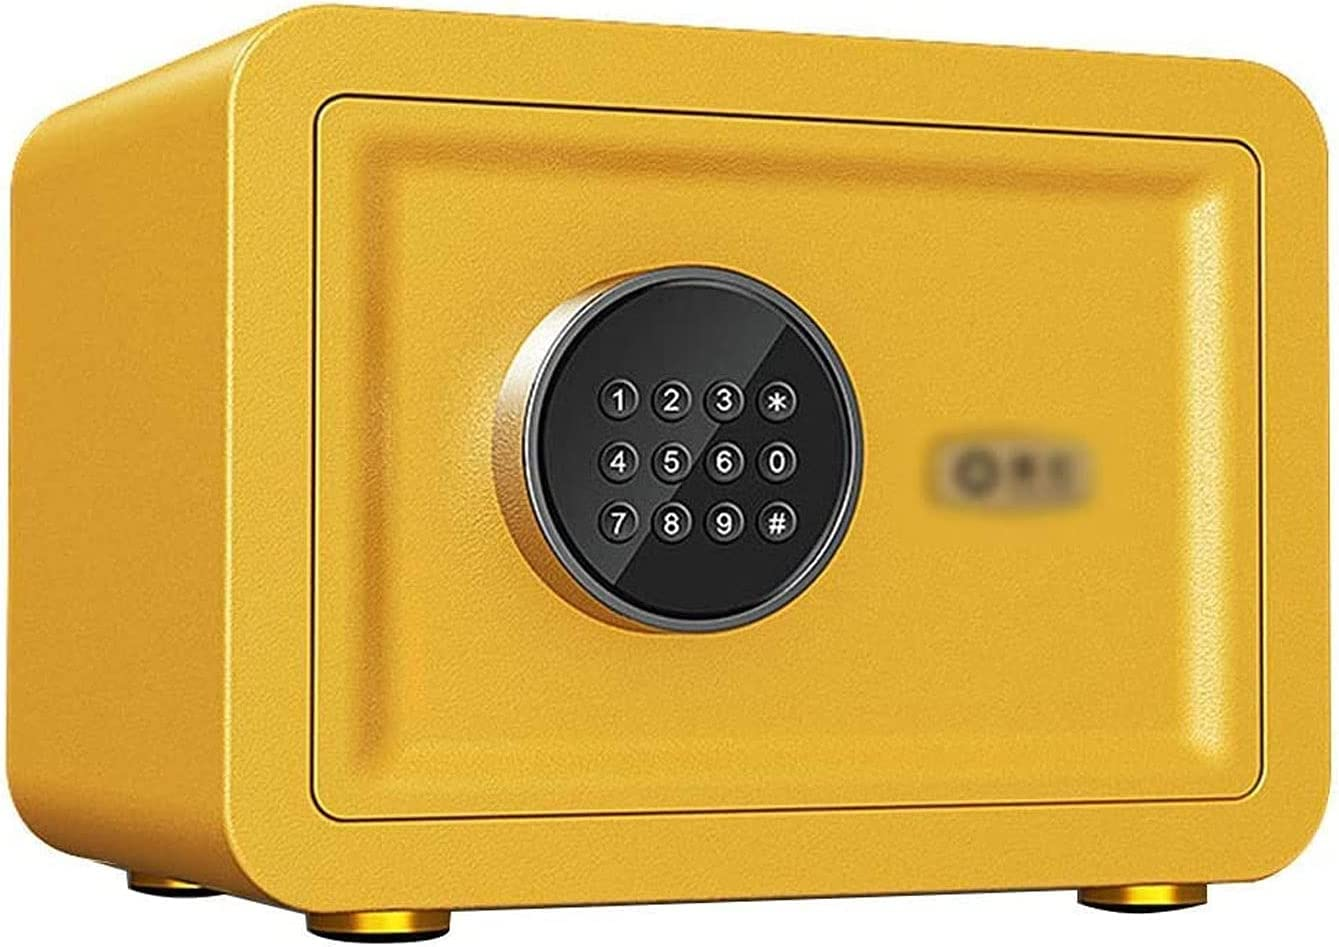 LBSX Electronic Digital Security Safe Office Home Max 80% OFF Omaha Mall Box for Hotel